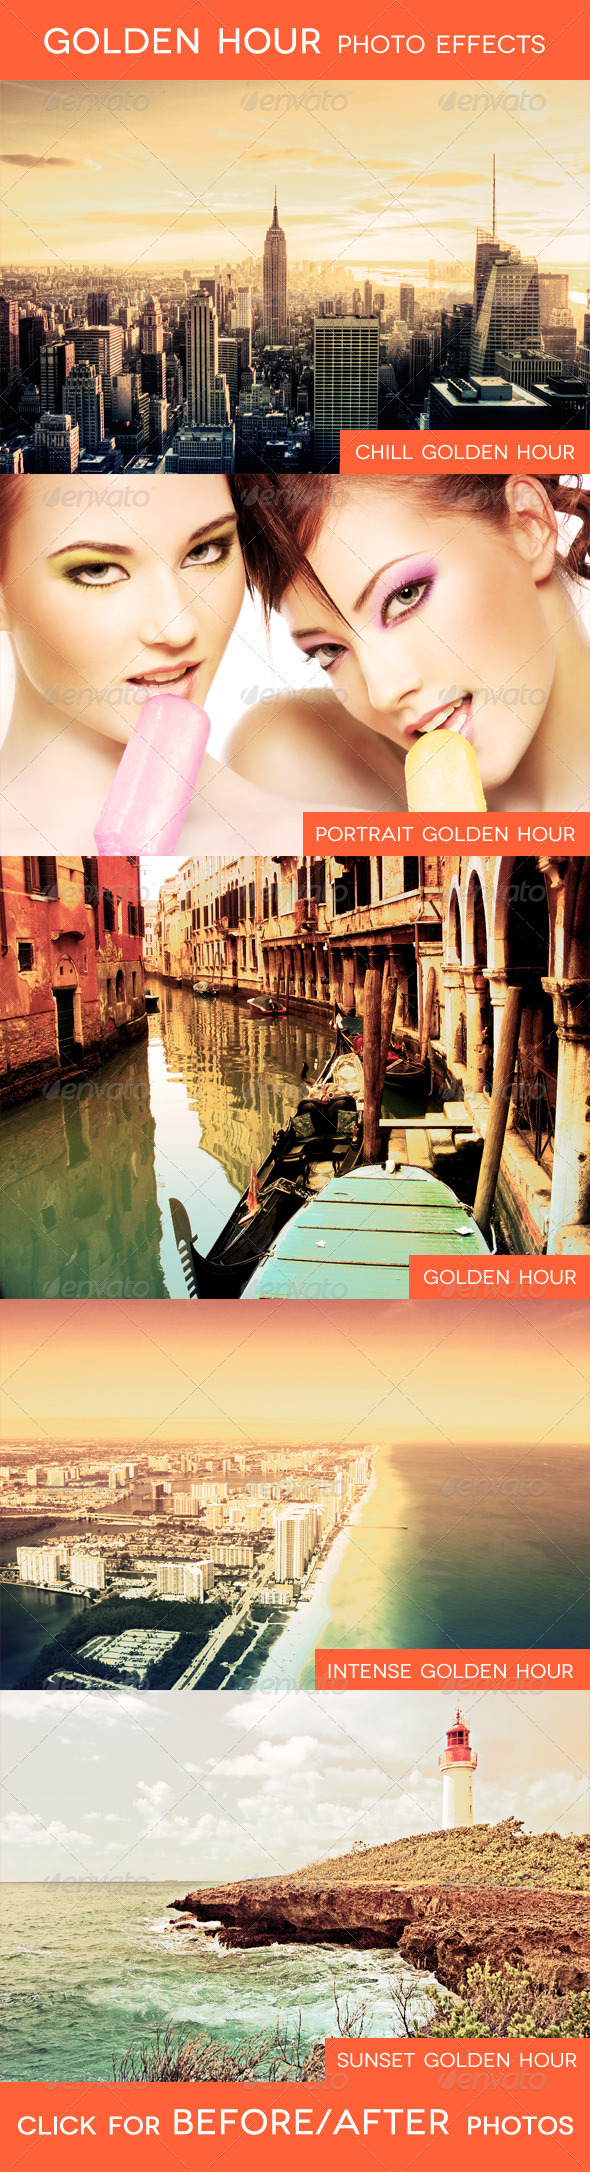 GraphicRiver Golden Hour Photo Effects 1708703